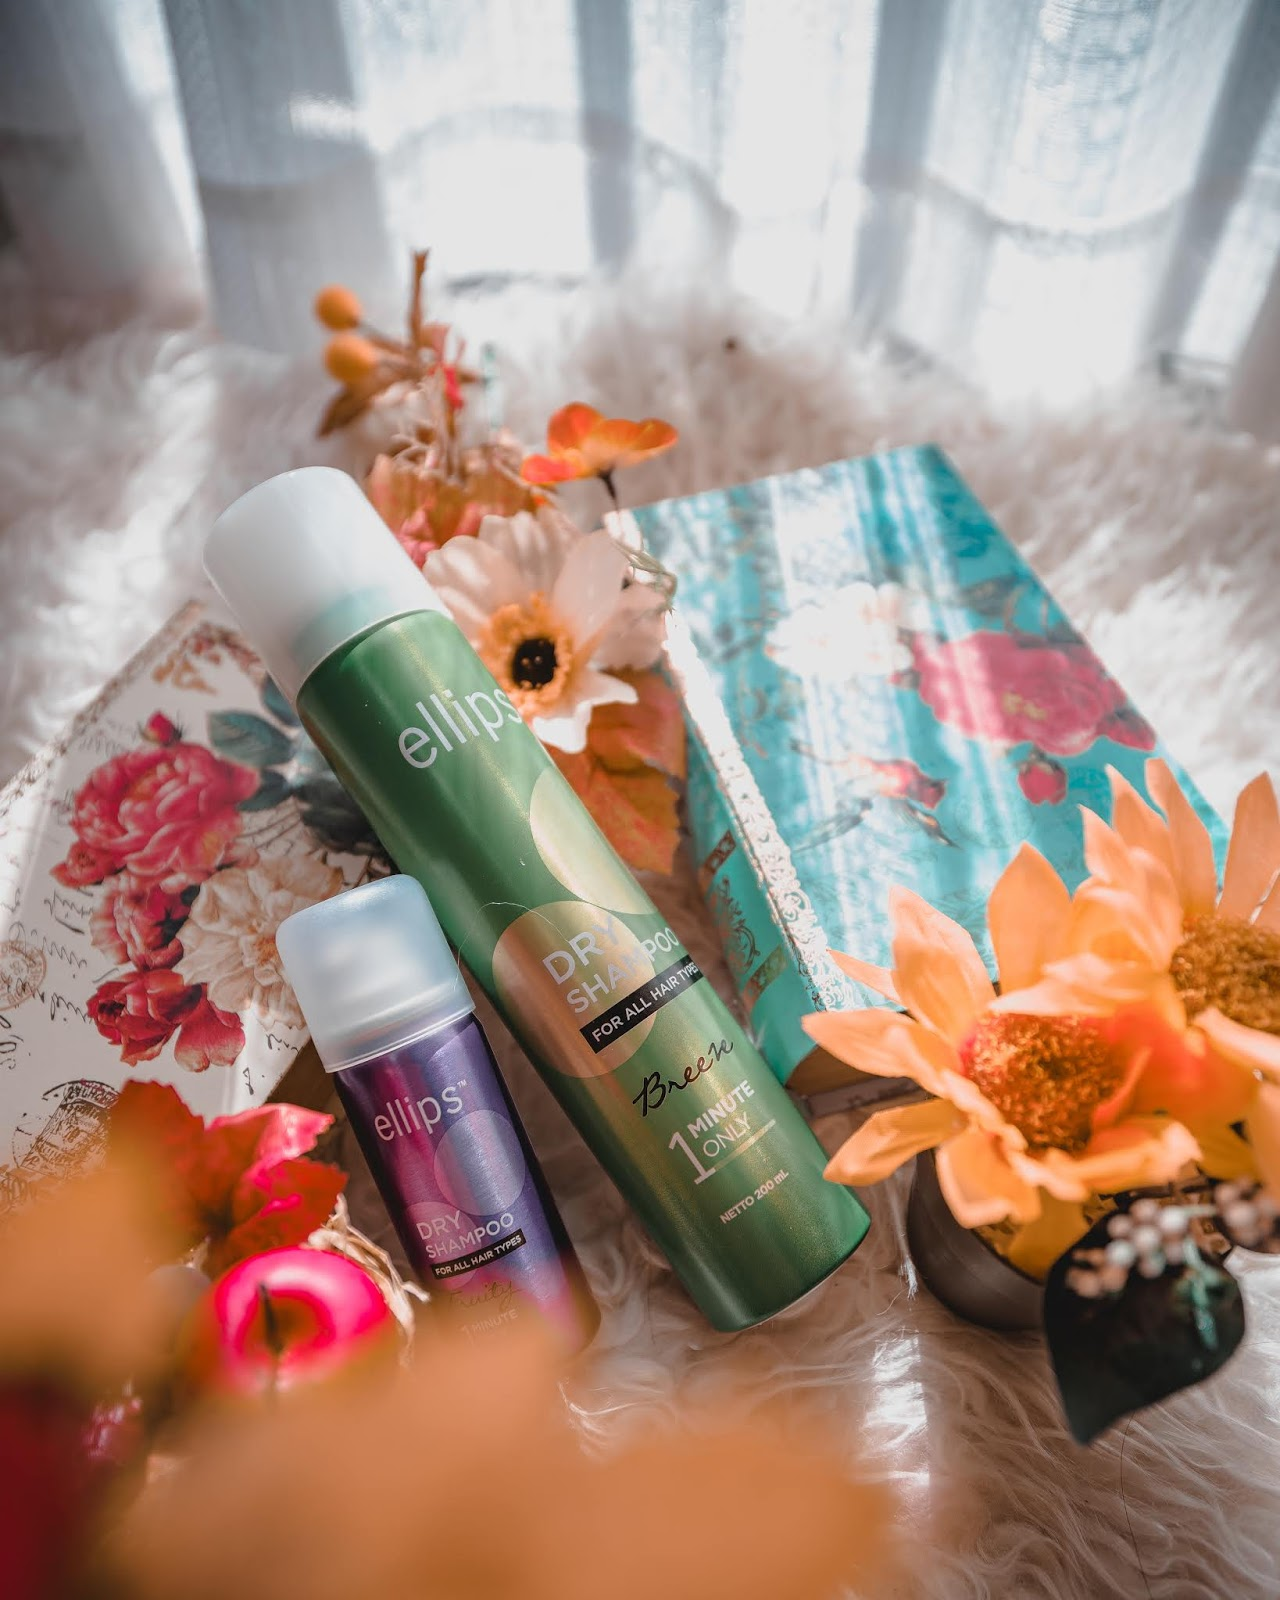 Ellips Dry Shampoo Review - Stella Lee ☆ Indonesia Beauty and